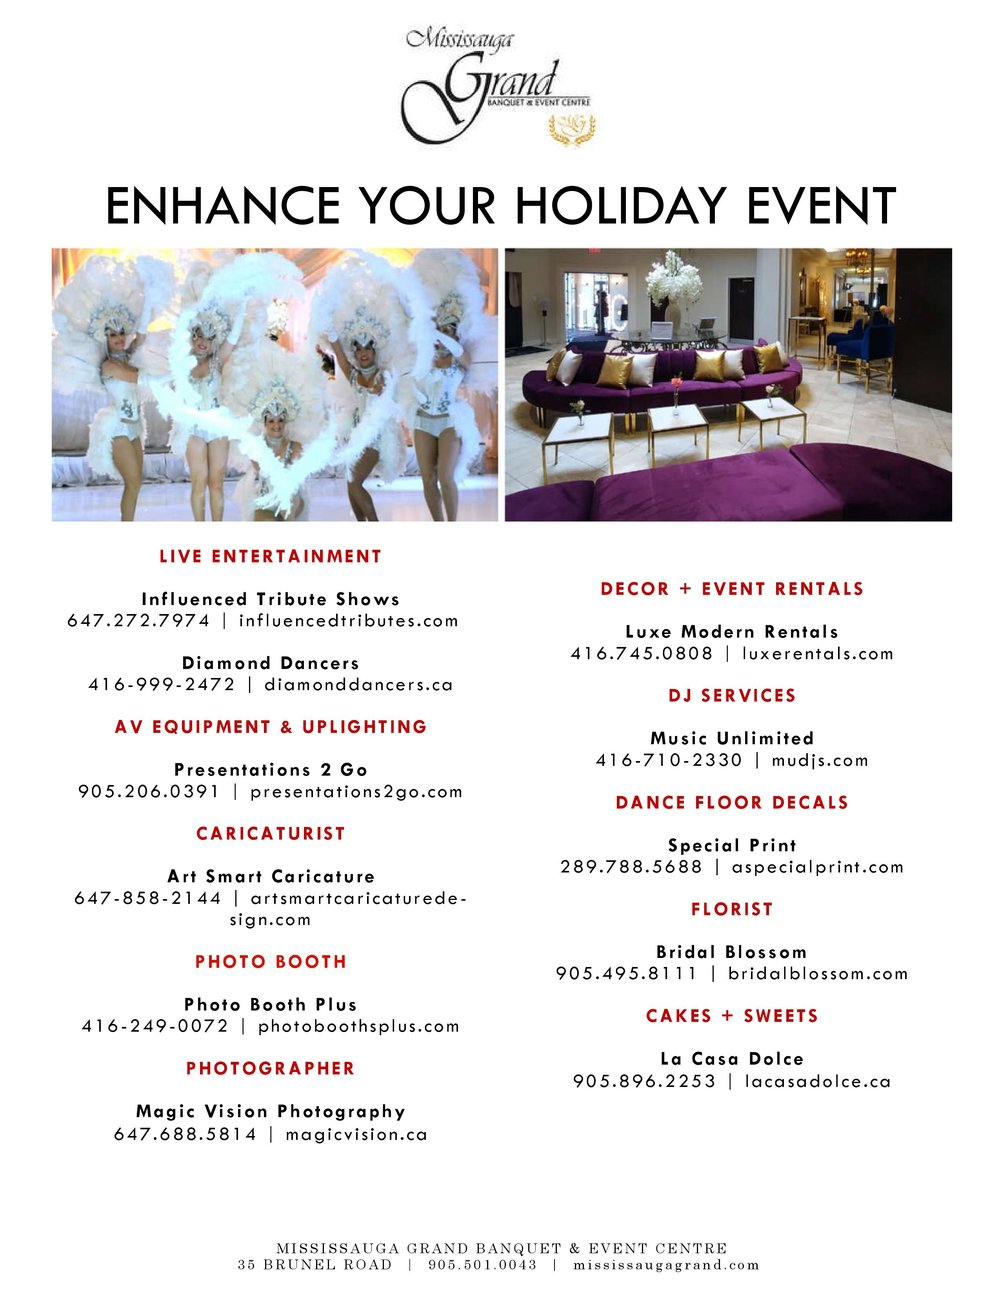 2-mississauga-venue-venues-Christmas-holiday-corporate-event.jpg